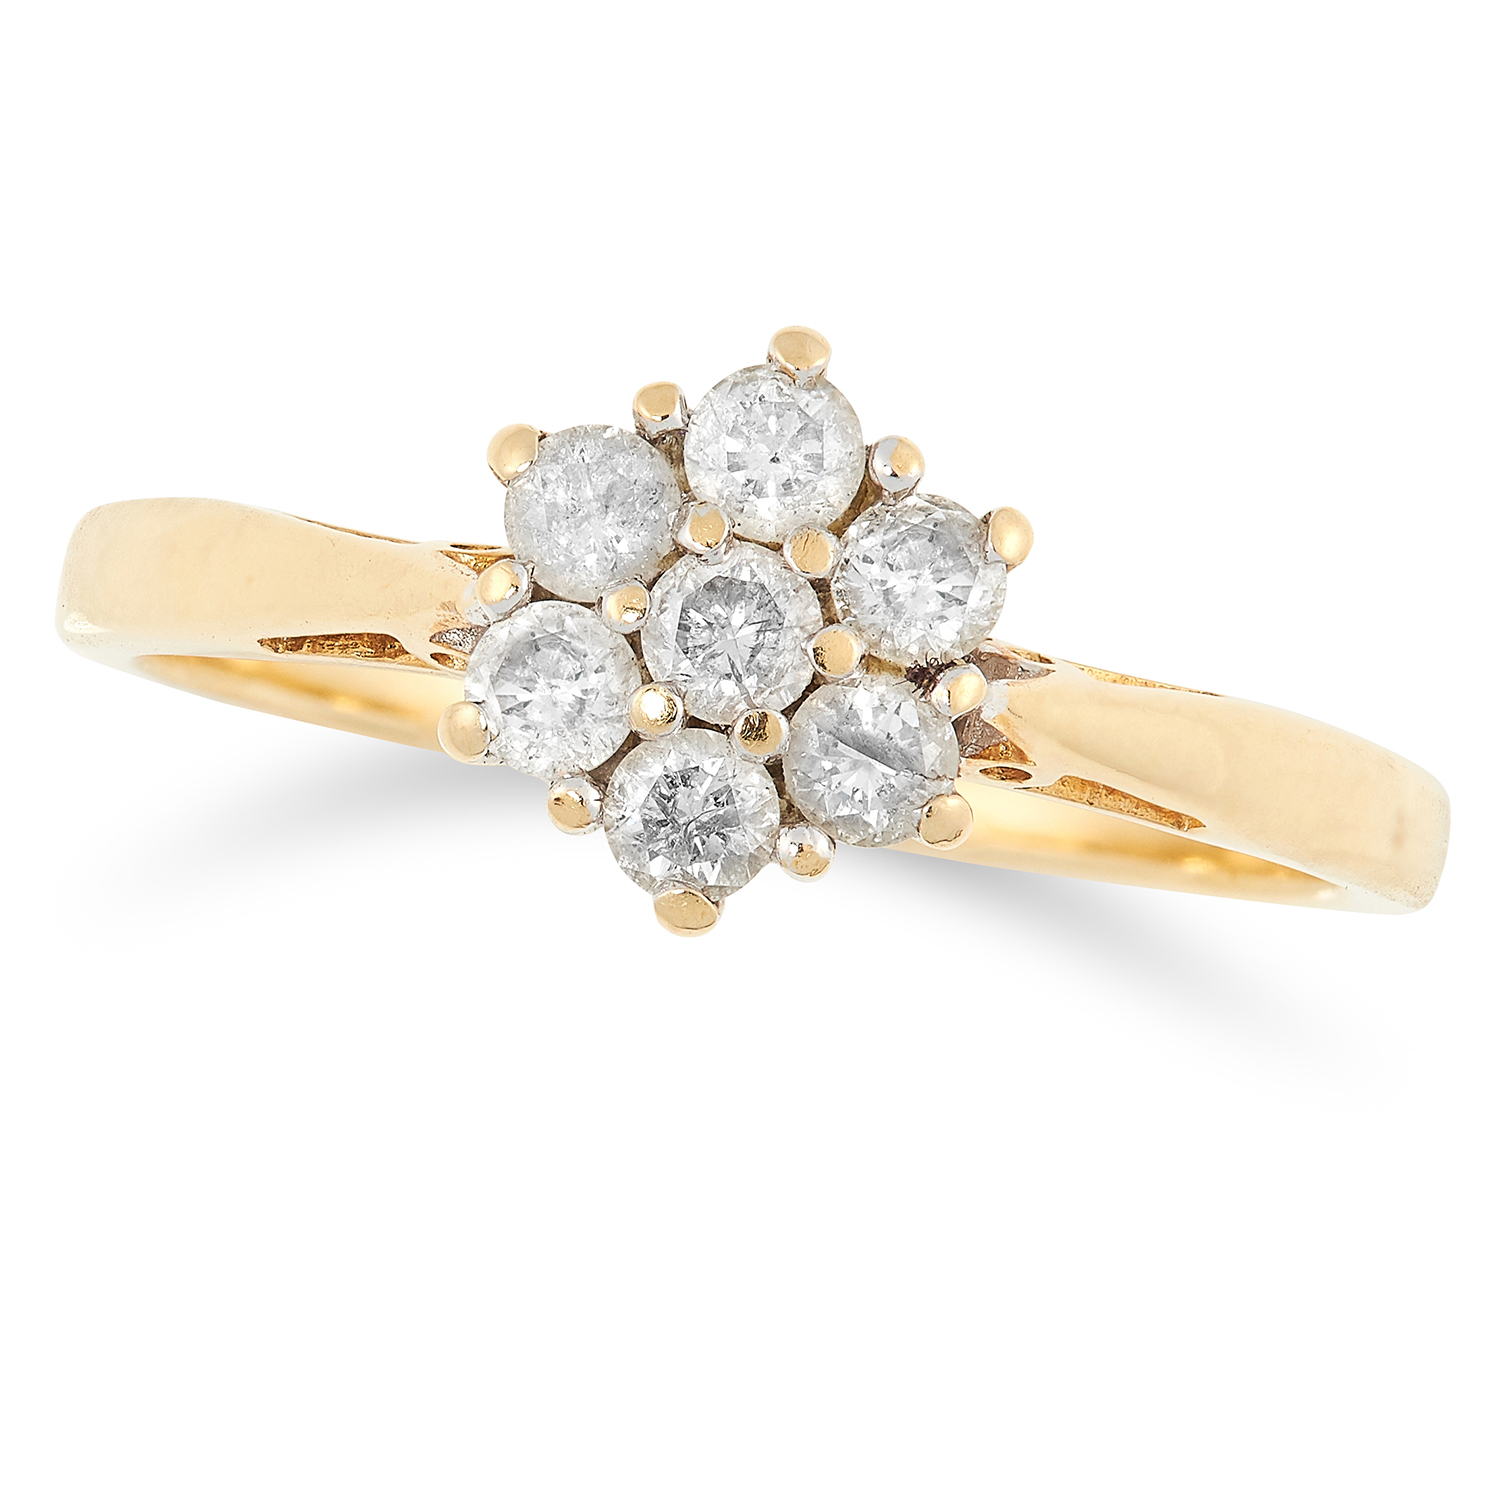 DIAMOND CLUSTER RING set with round and baguette cut diamonds, size R / 9, 3.4g.